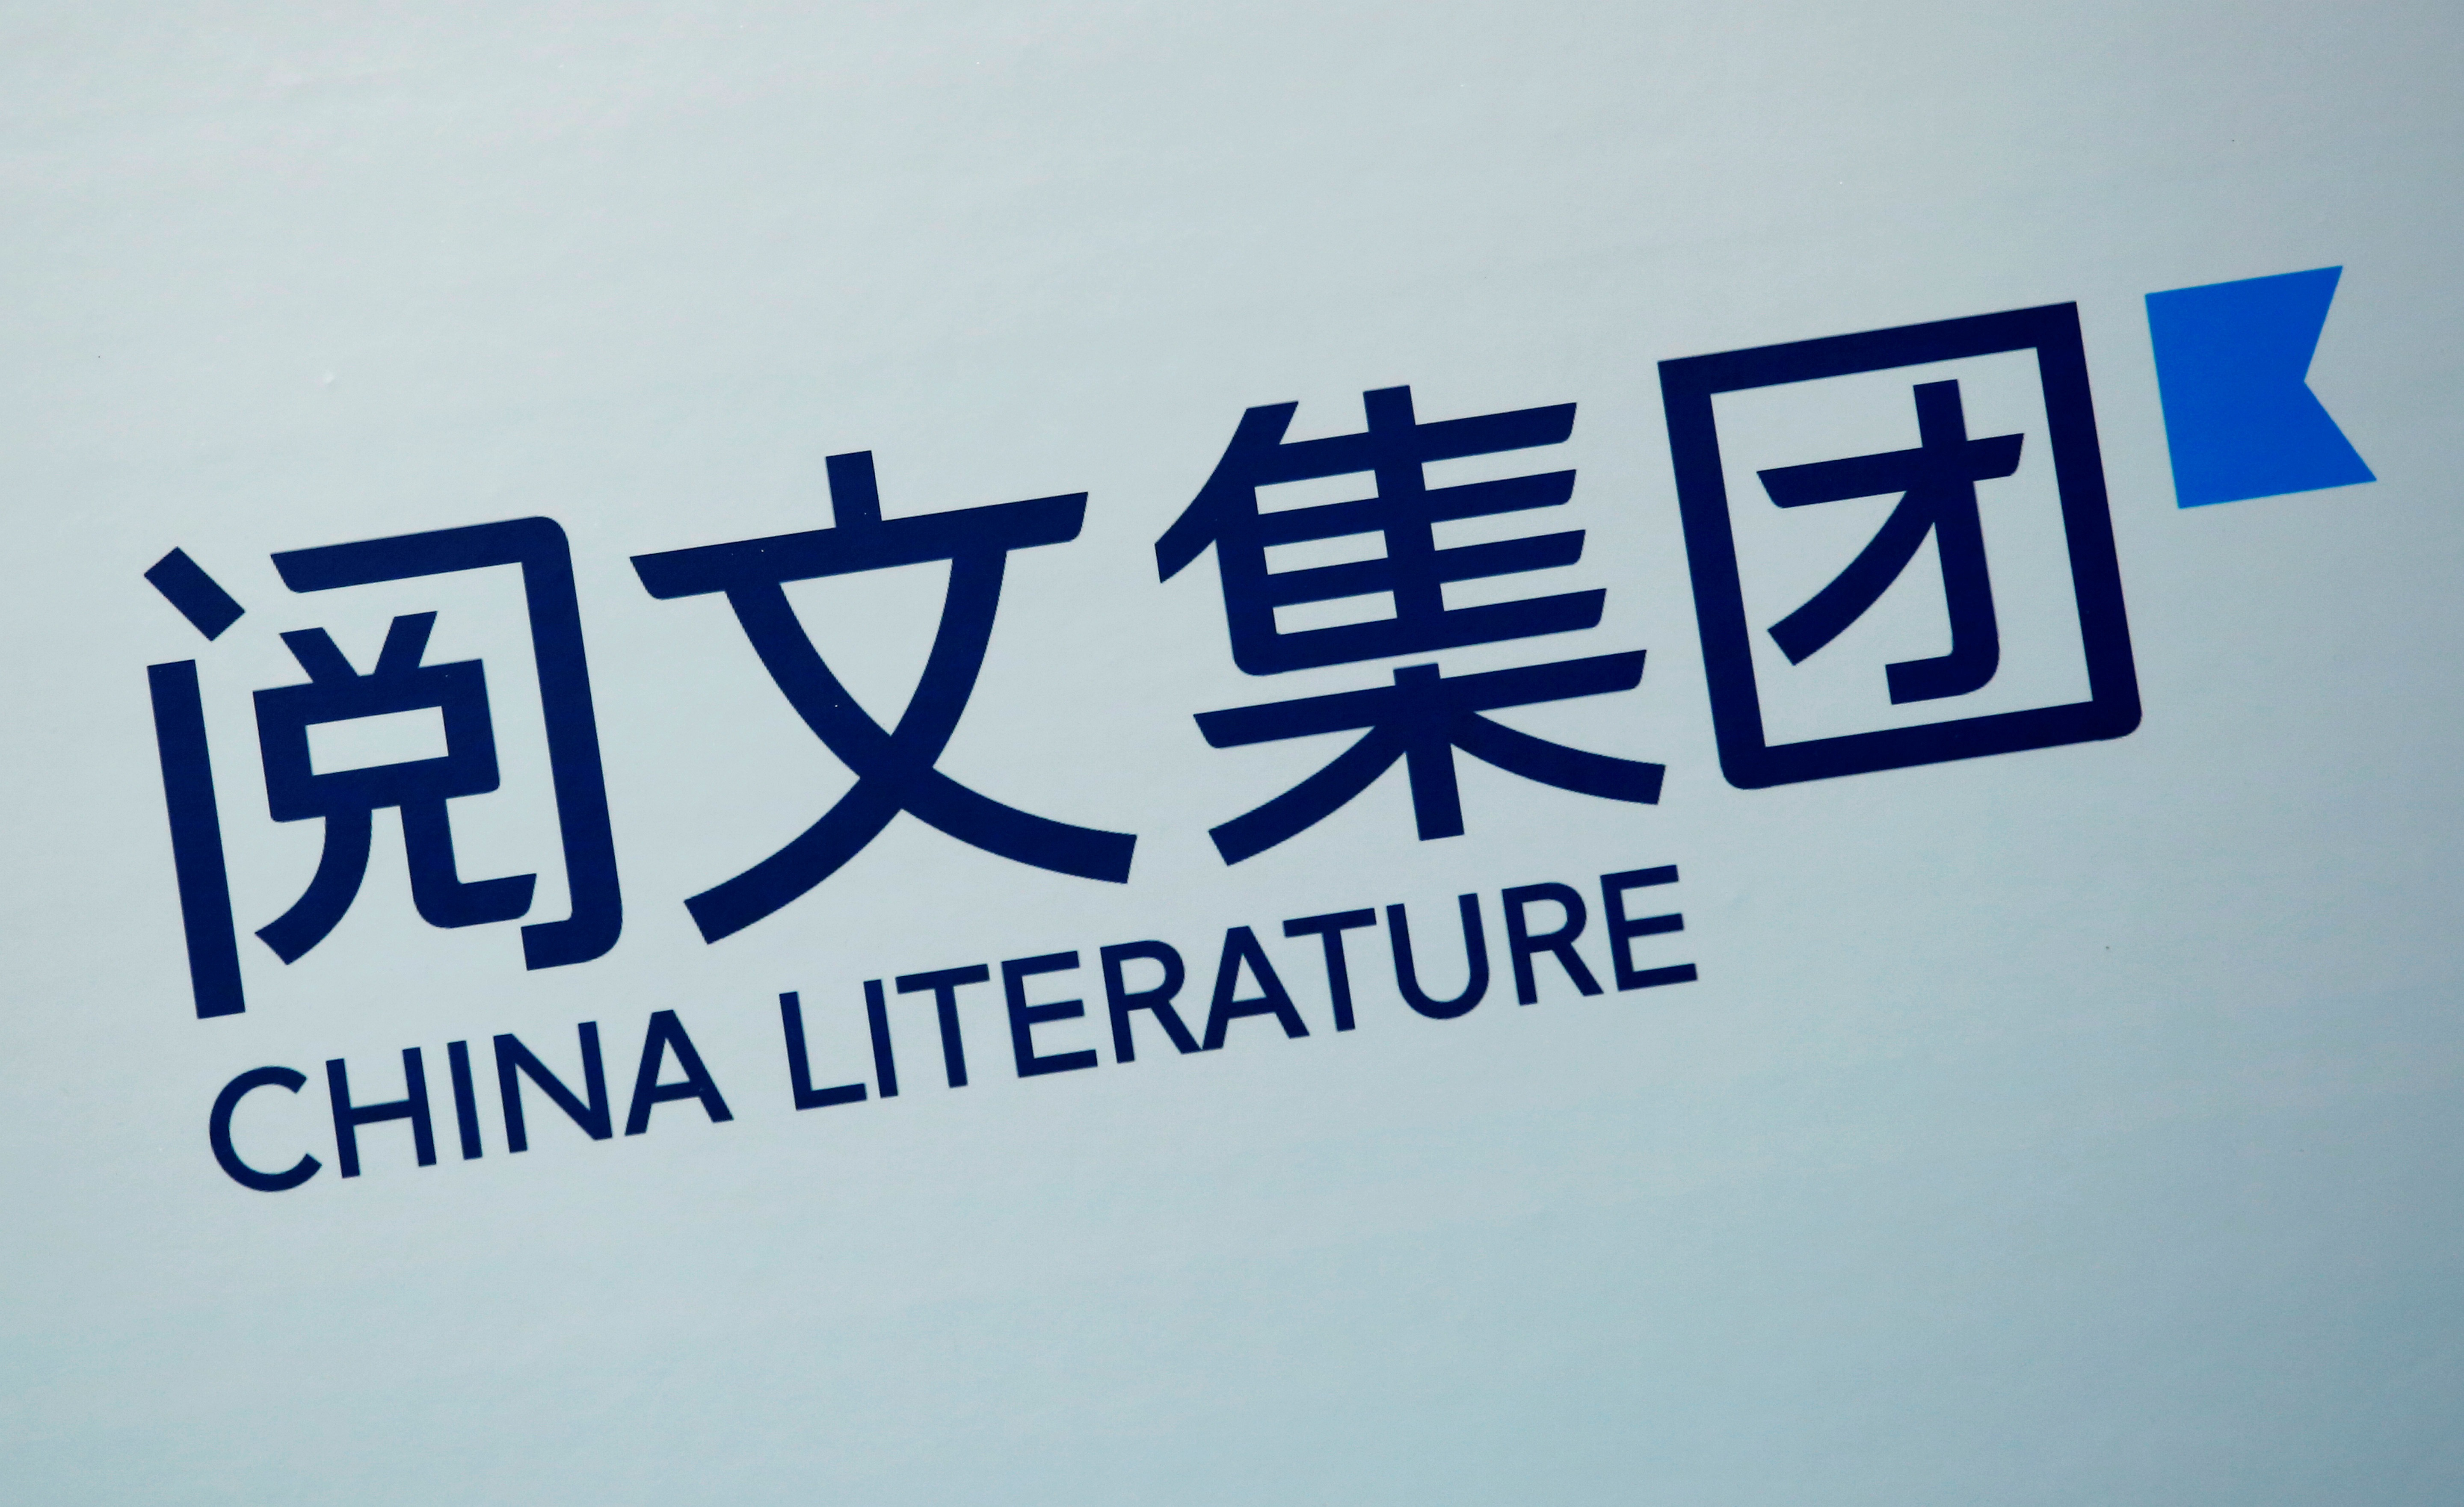 Tencent confirms China Literature shares priced at top of range